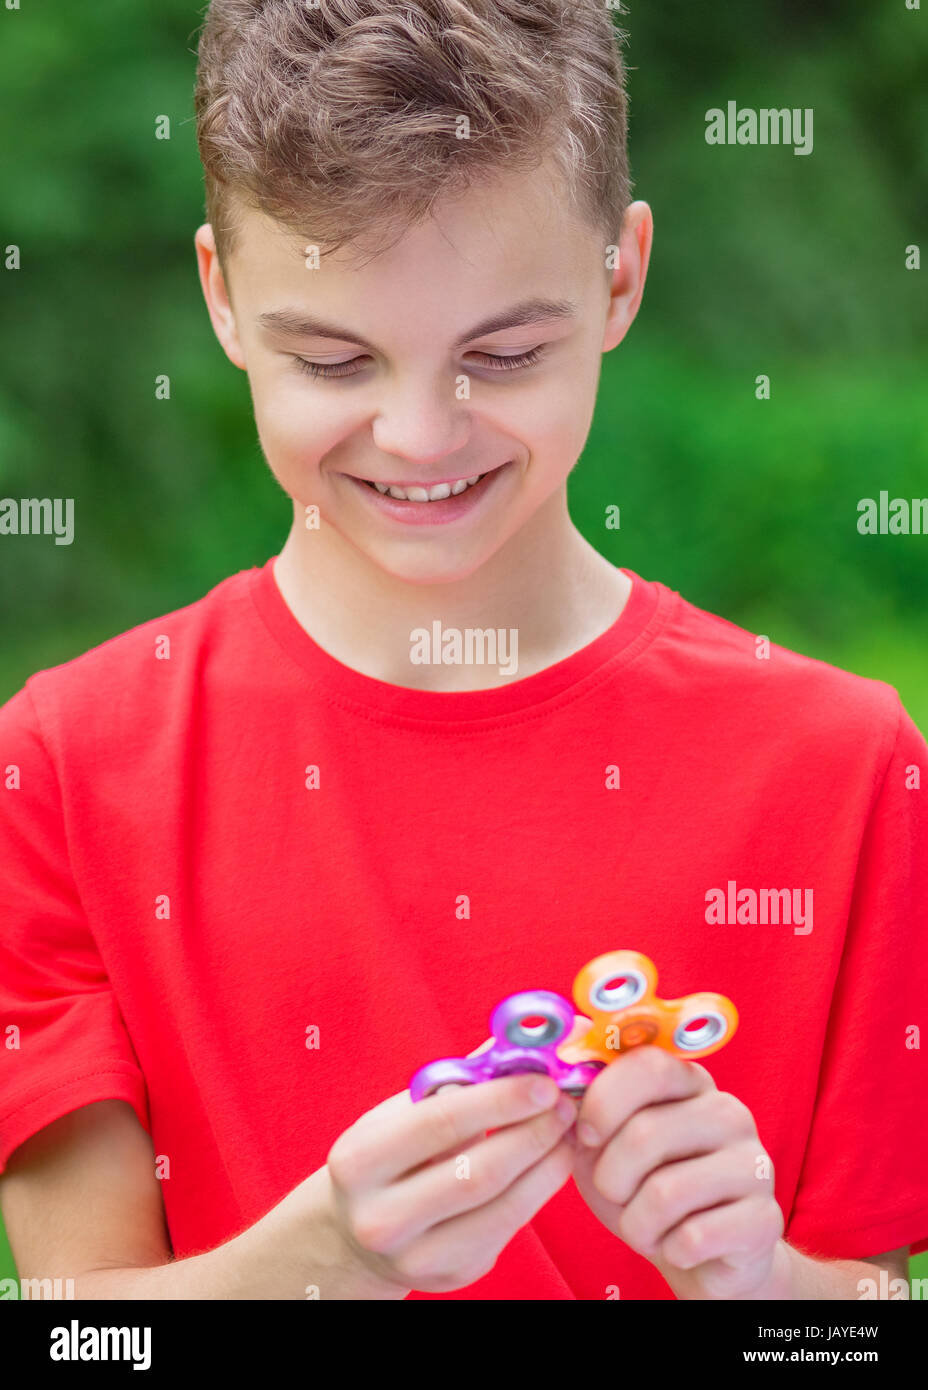 Young teen boy holding popular fidget spinner toy - outdoors portrait. Happy smiling child playing with a orange - Stock Image